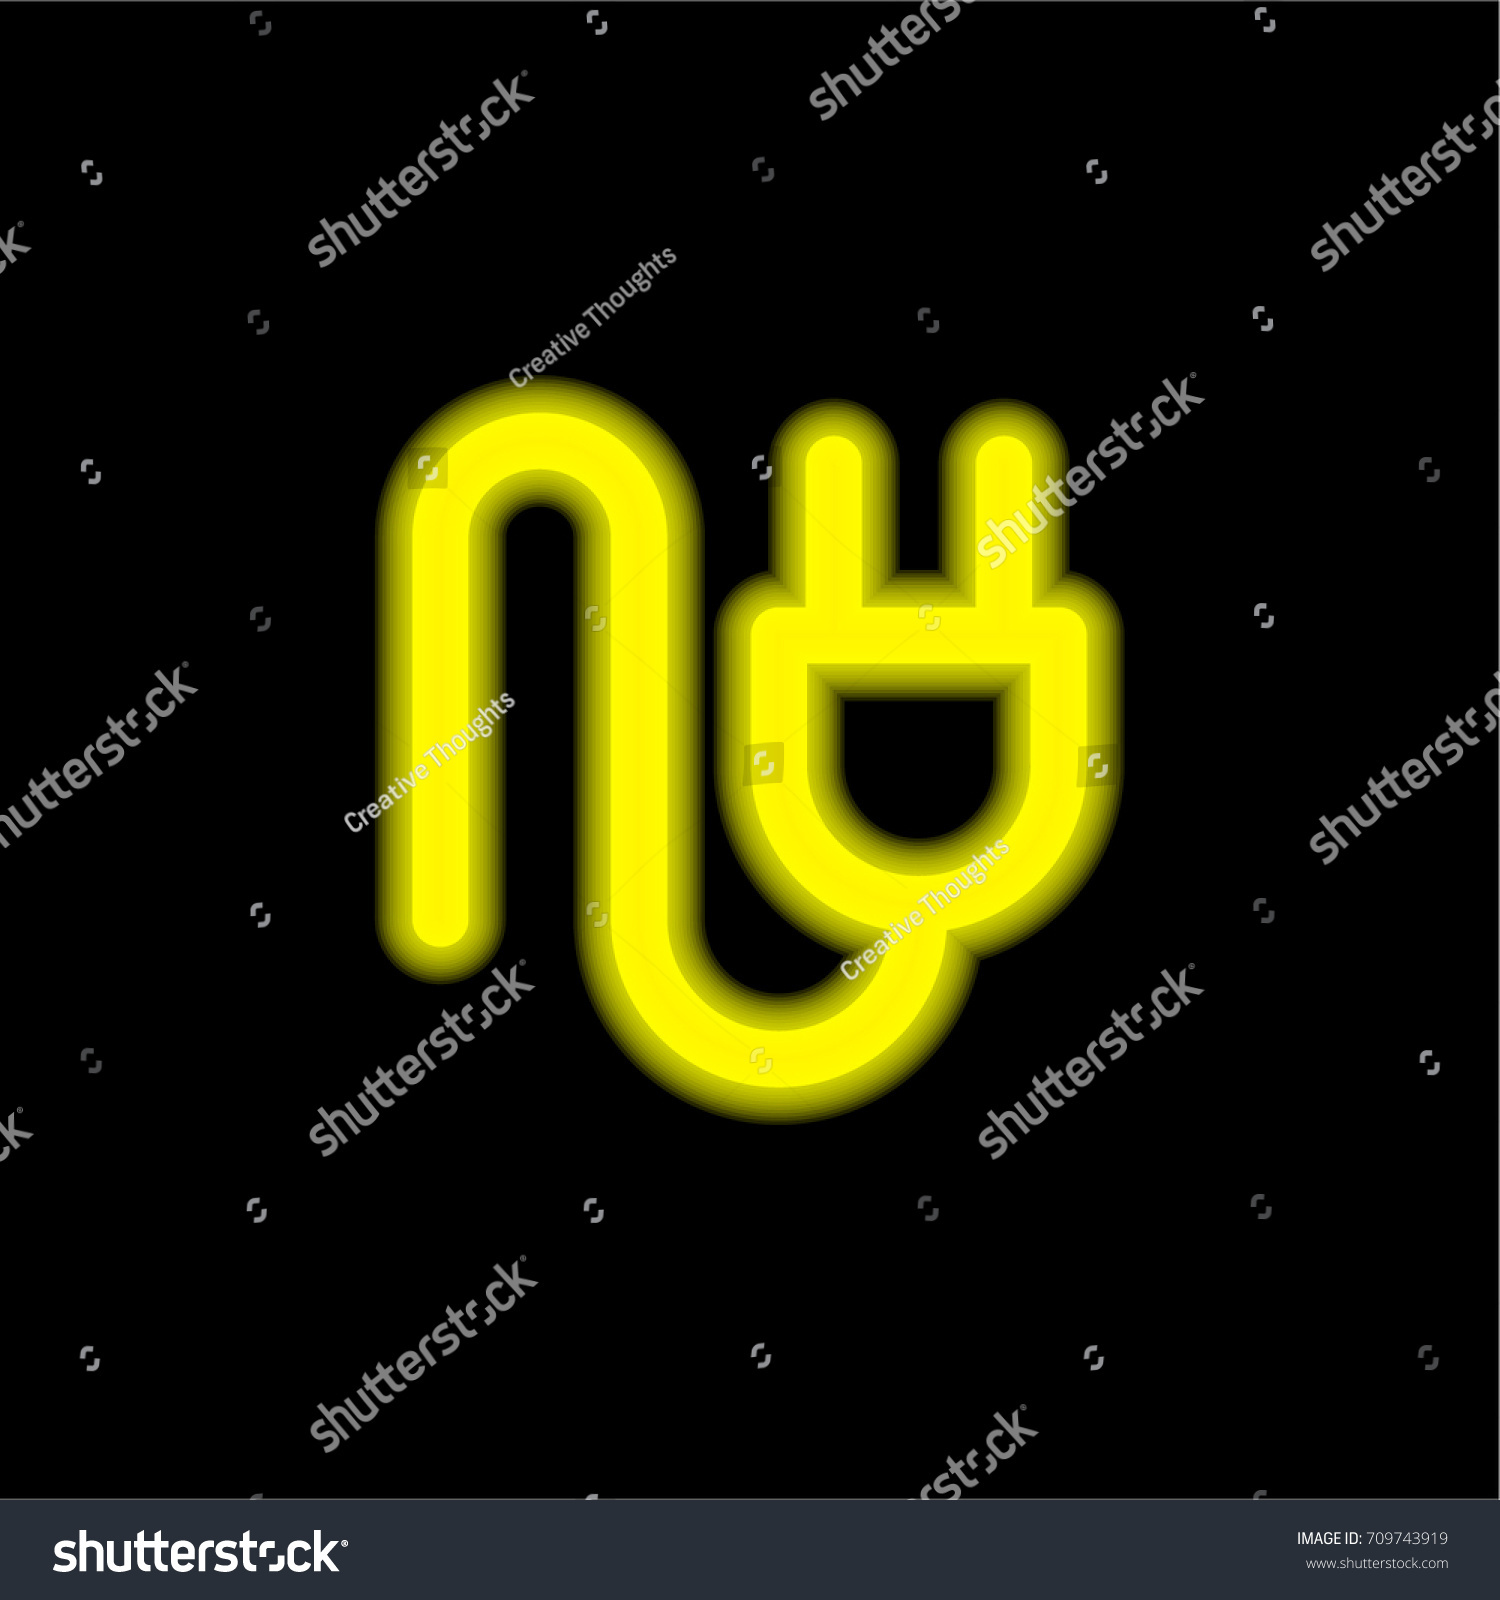 Ux Plug Plug Yellow Glowing Neon Ui Ux Stock Vector Royalty Free